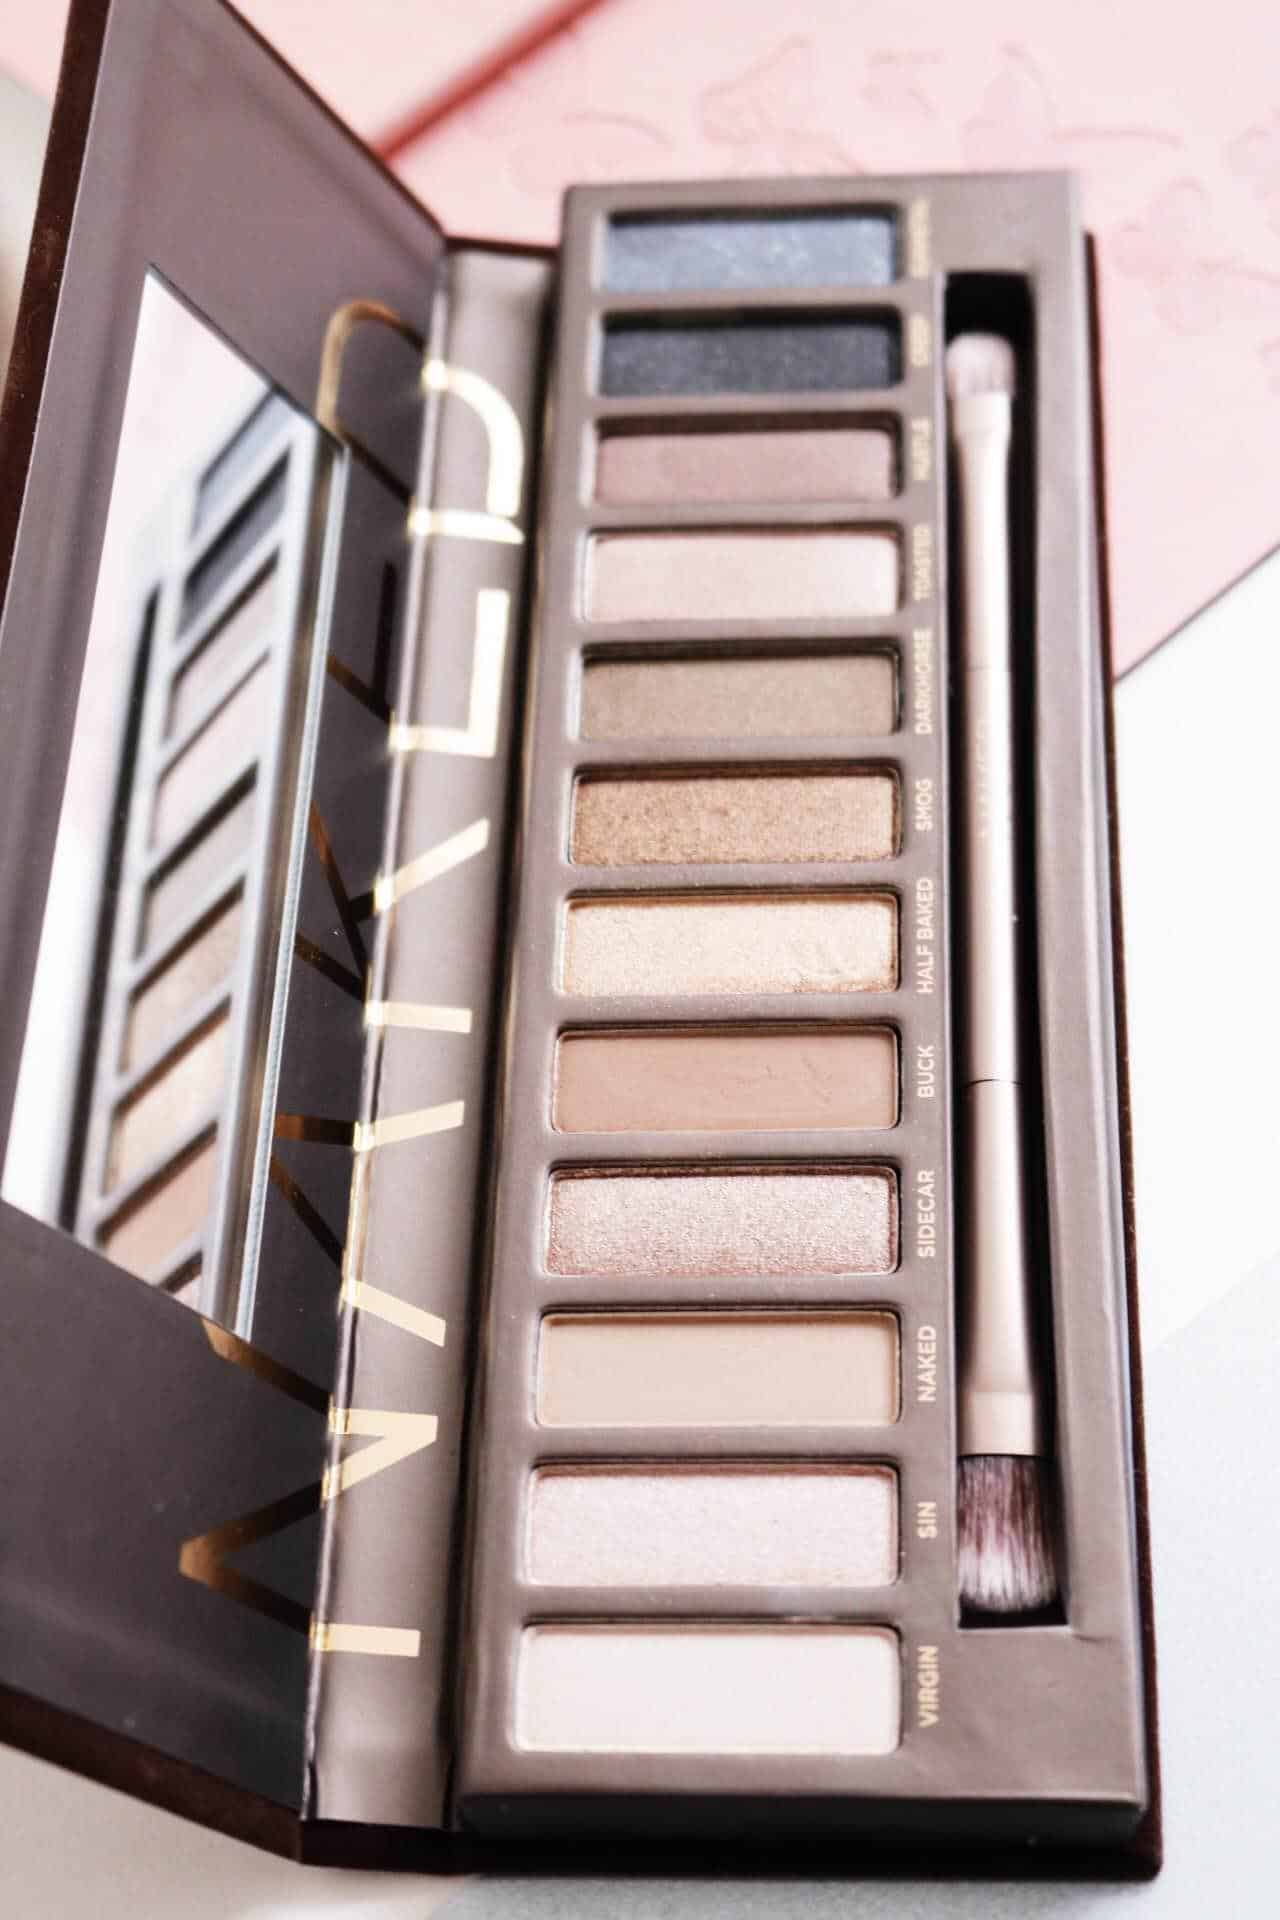 eleanor j'adore - My Urban Decay Eyeshadow Palette Collection